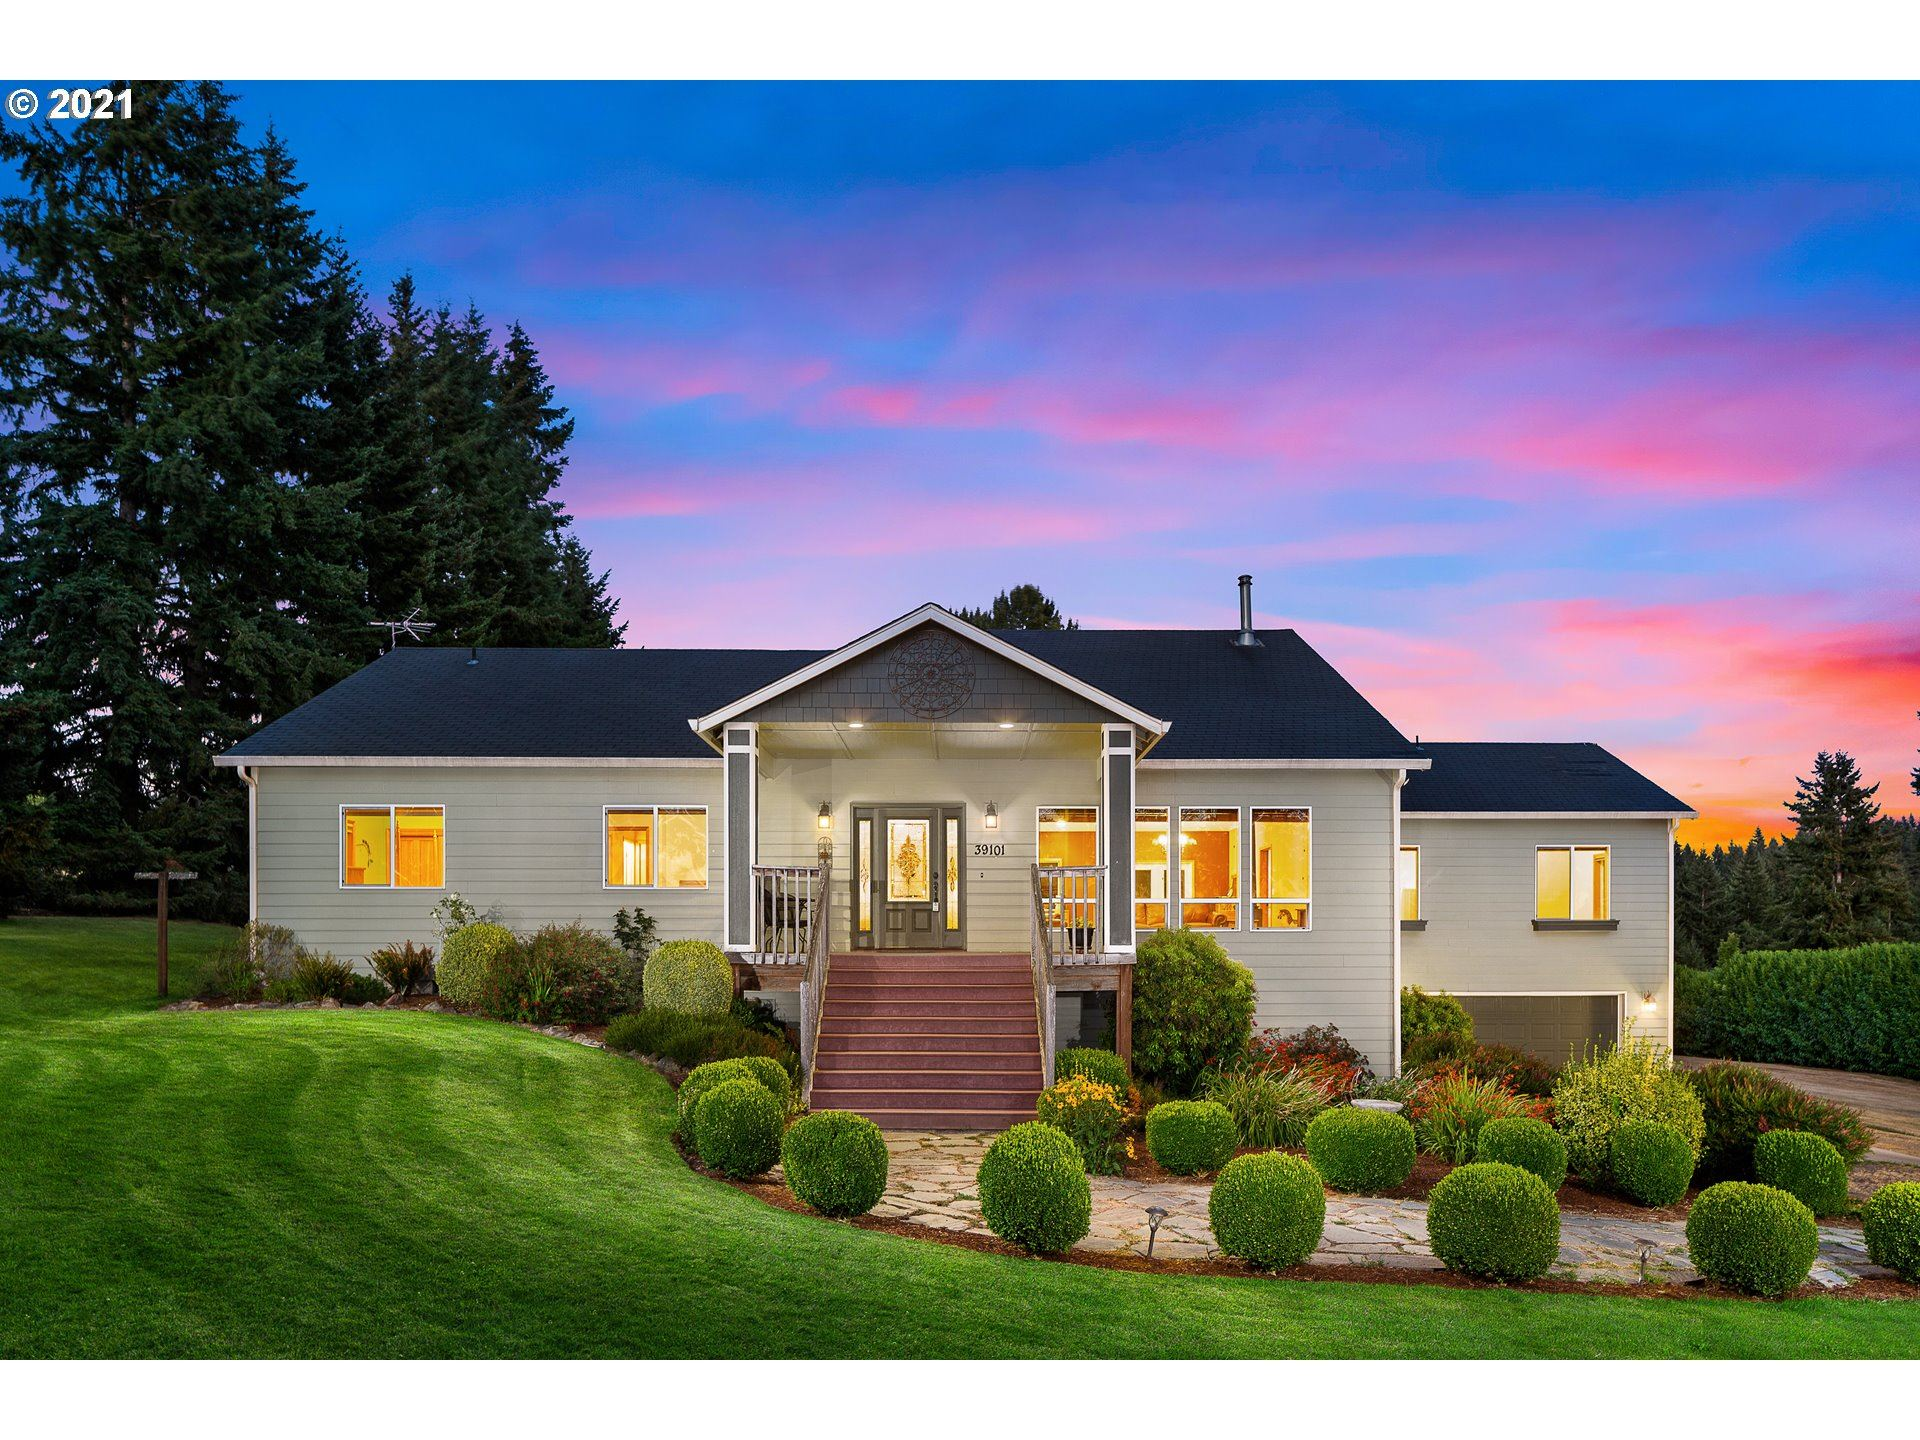 39101 NW GOOSE HILL AVE, Woodland, WA 98674 - MLS#: 21122082